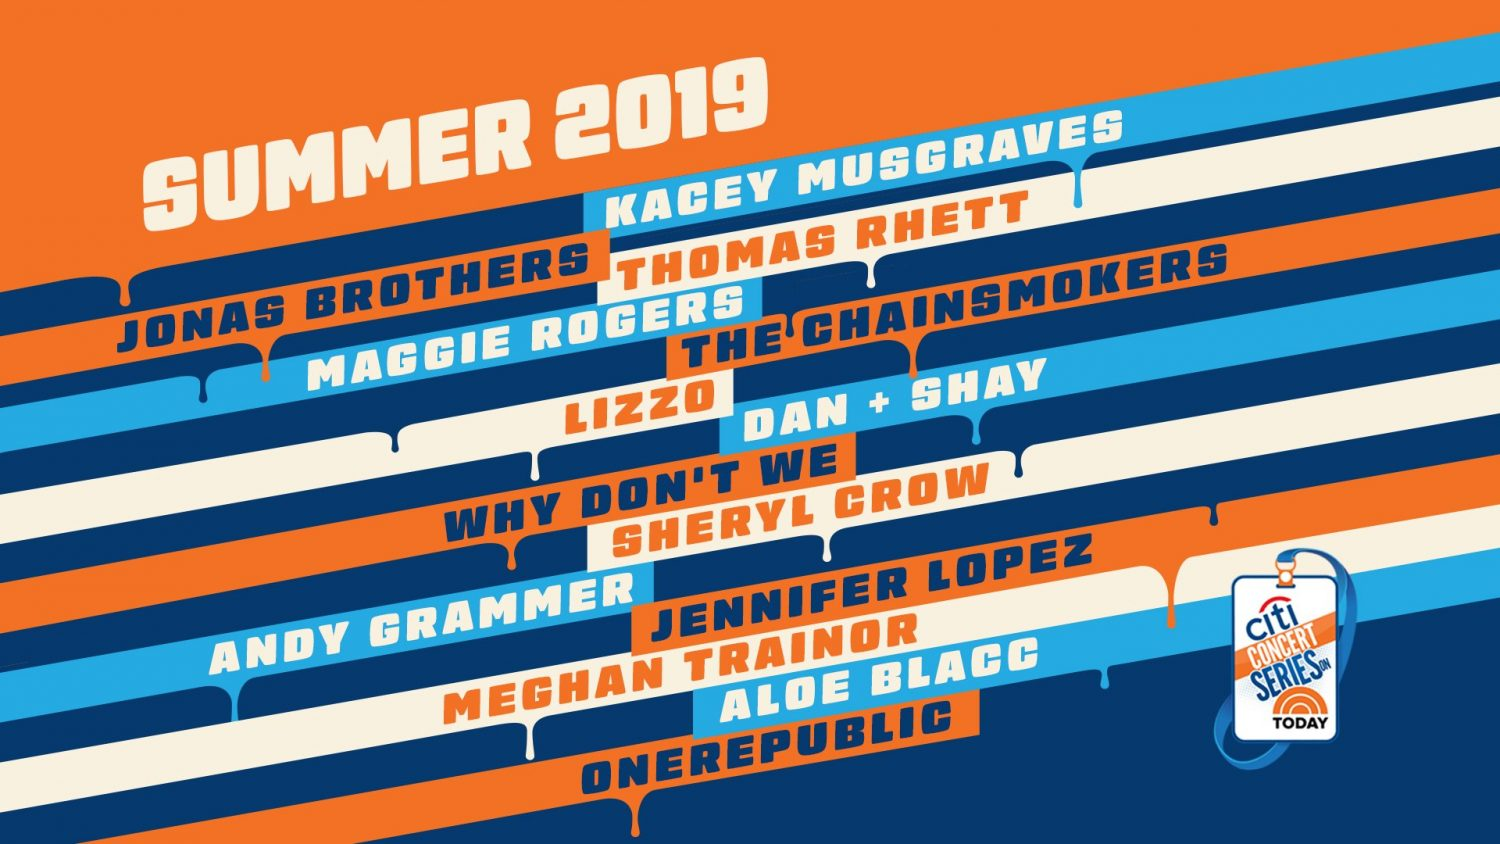 TODAY Show 2019 Citi Concert Series